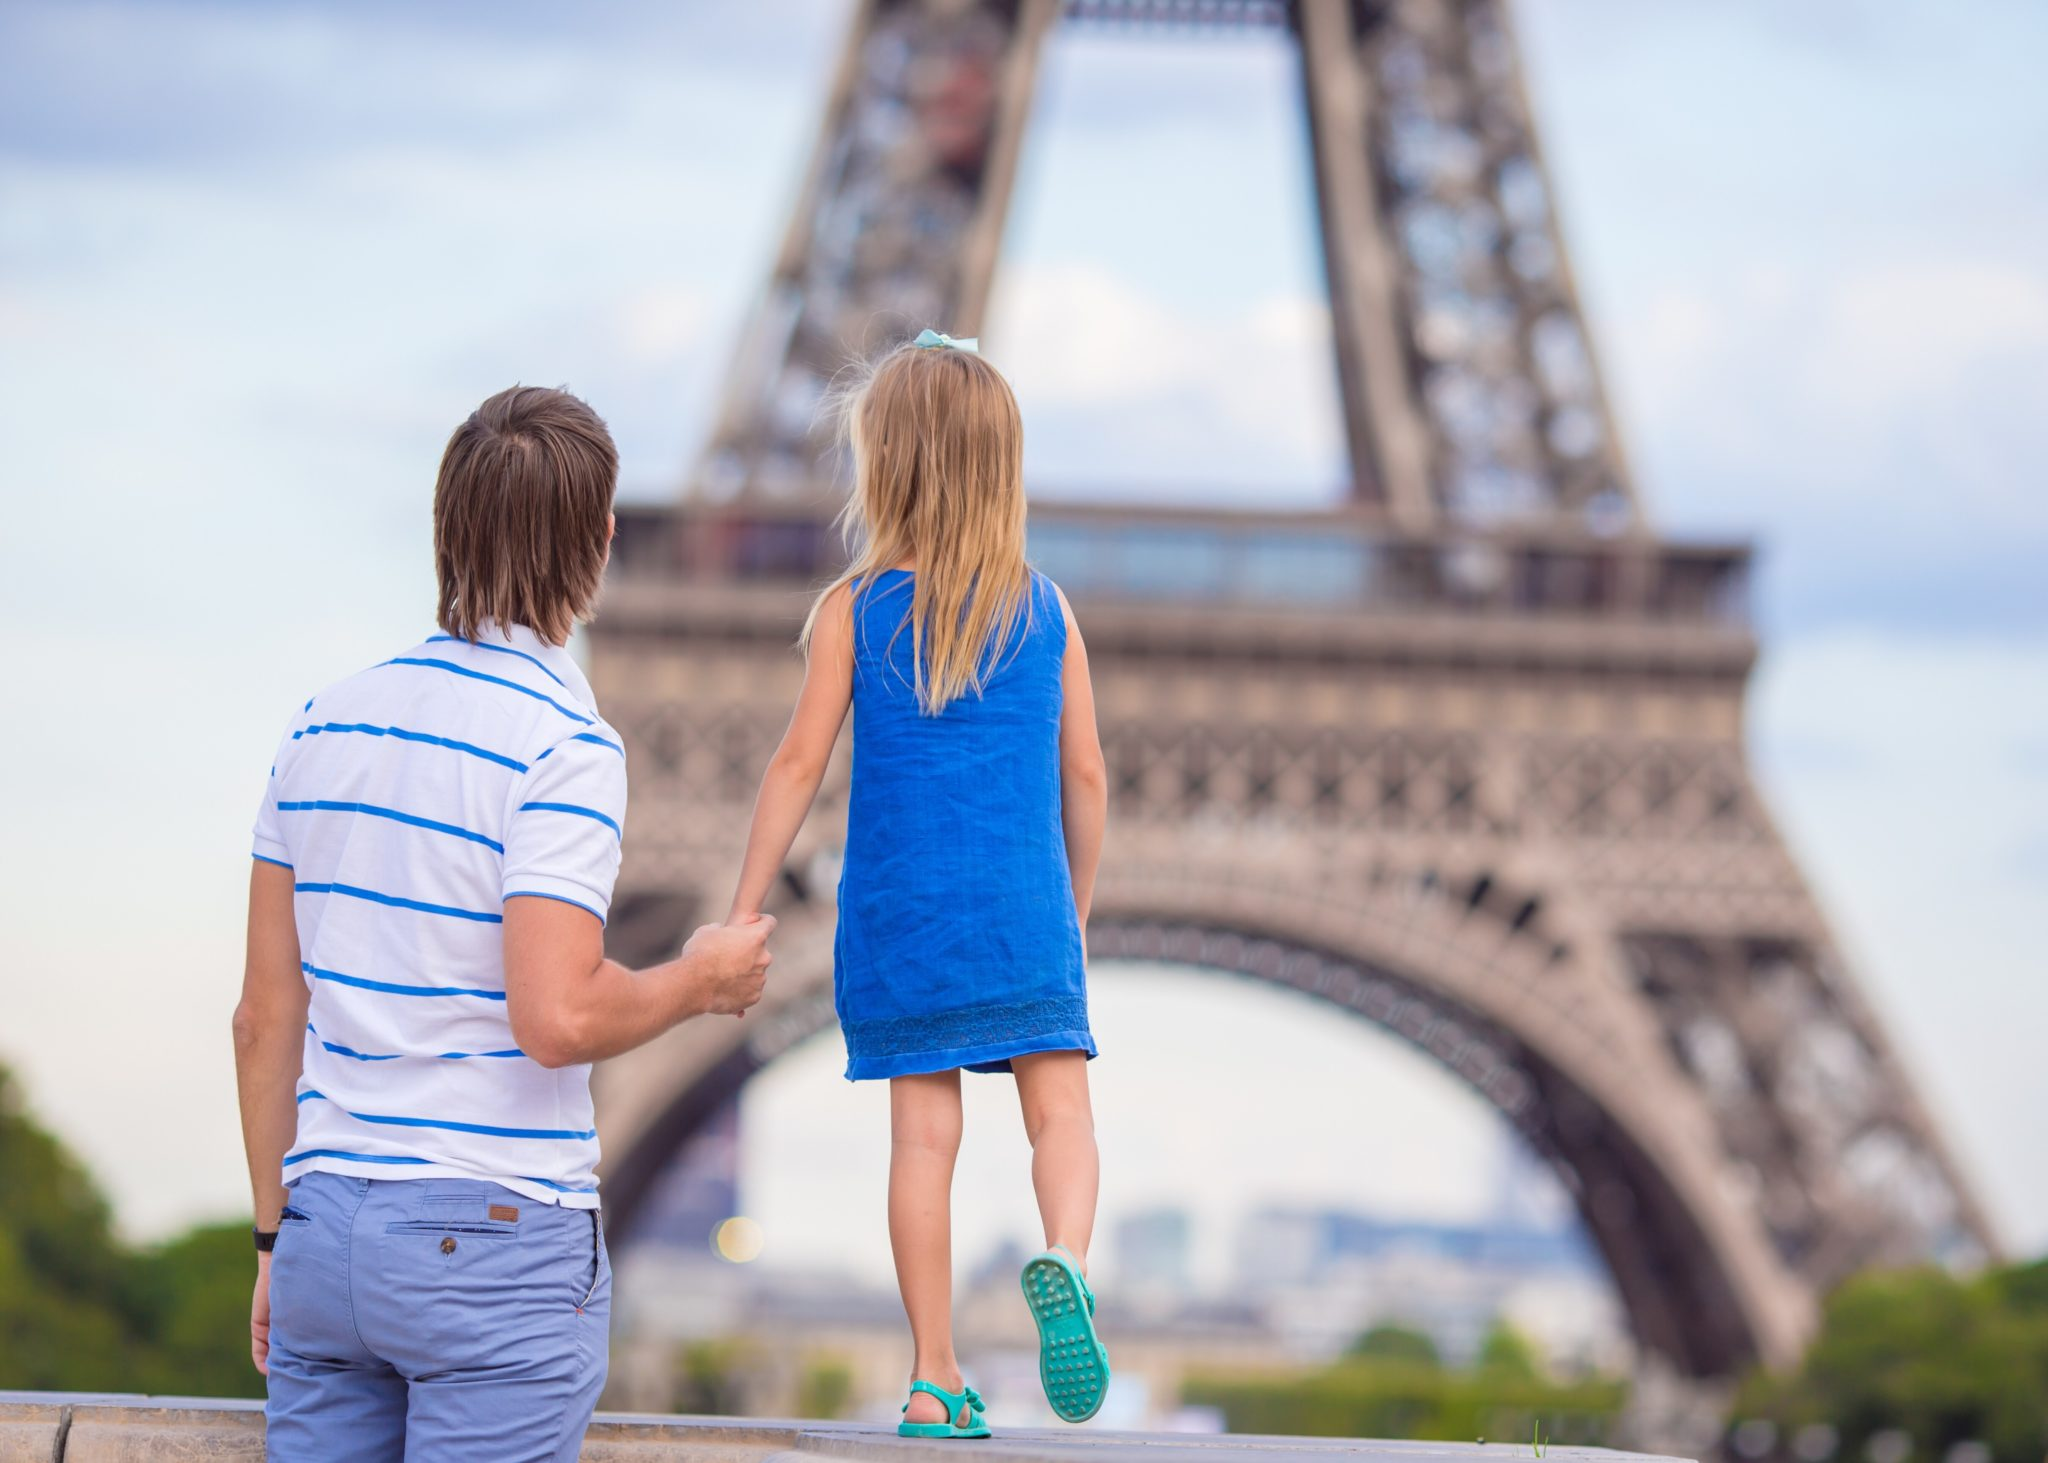 Enjoy Paris from the comfort of your own home!